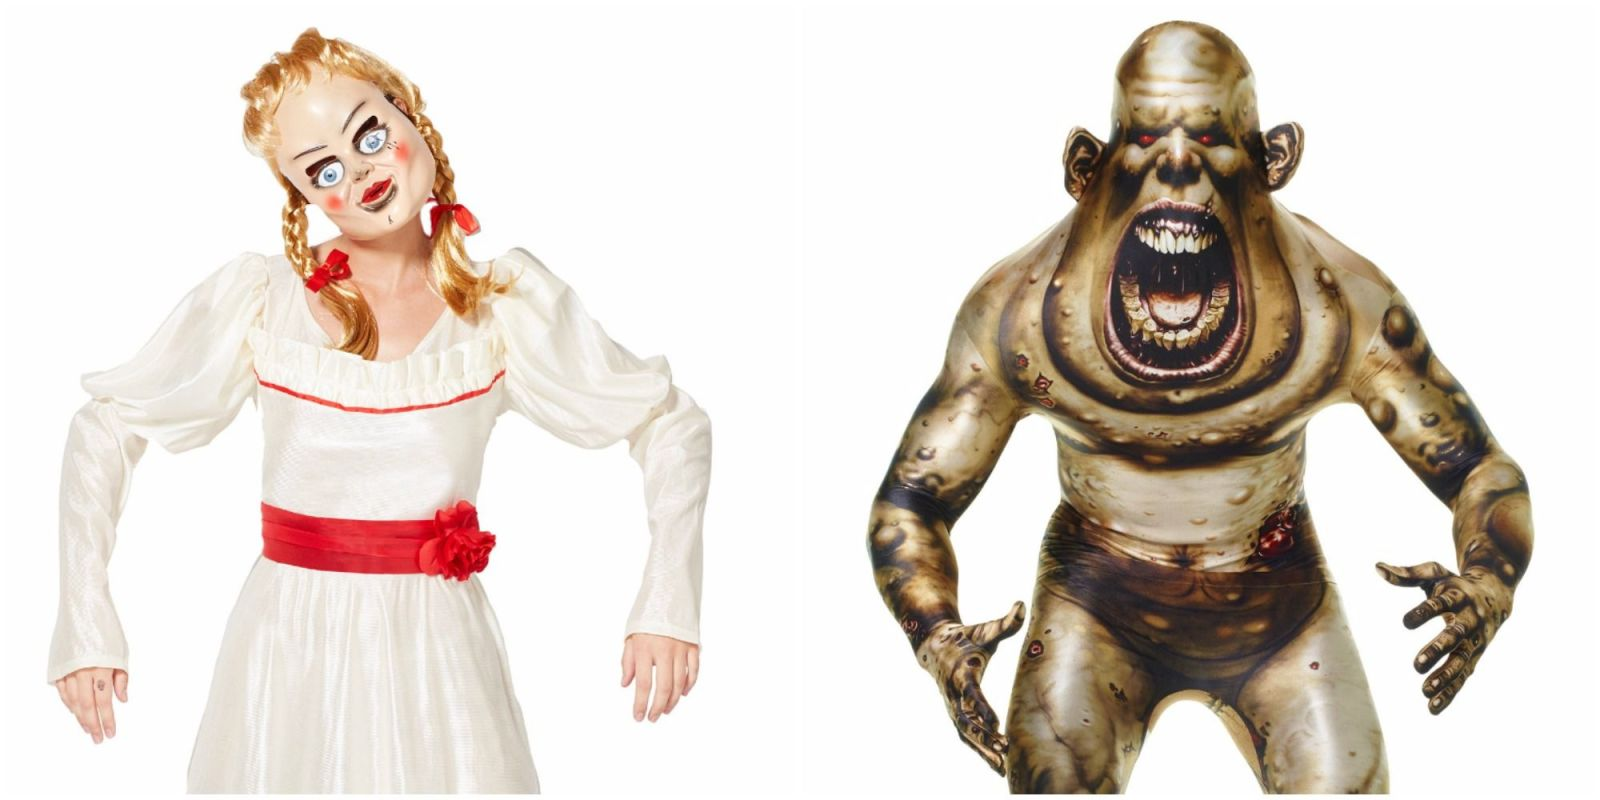 20 scary halloween costume ideas that will seriously spook 20 scary halloween costume ideas that will seriously spook